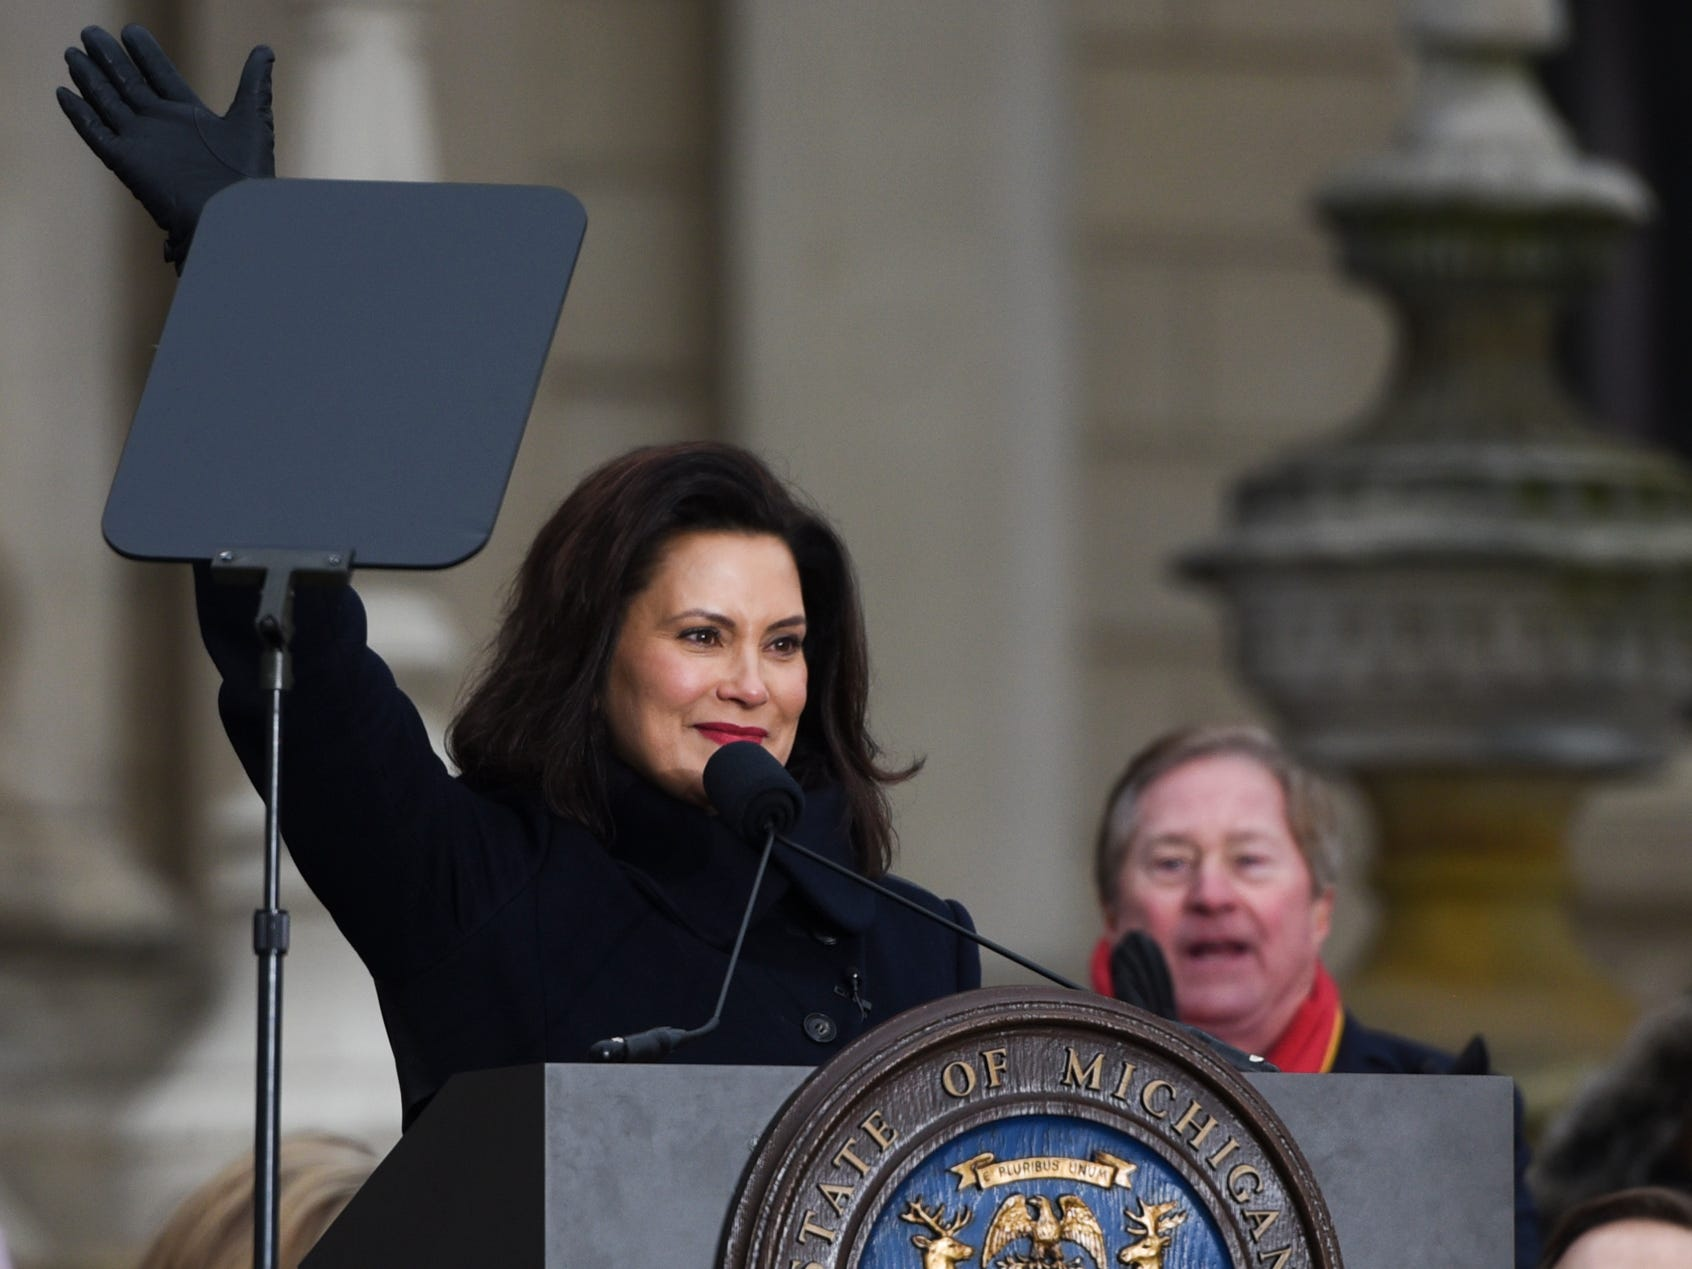 Michigan Governor Gretchen Whitmer waves Tuesday, Jan. 1, 2019, after being sworn-in as Michigan's 49th governor on the steps of the State Capitol in Lansing, Michigan.  [AP Photo/Matthew Dae Smith/Lansing State Journal]